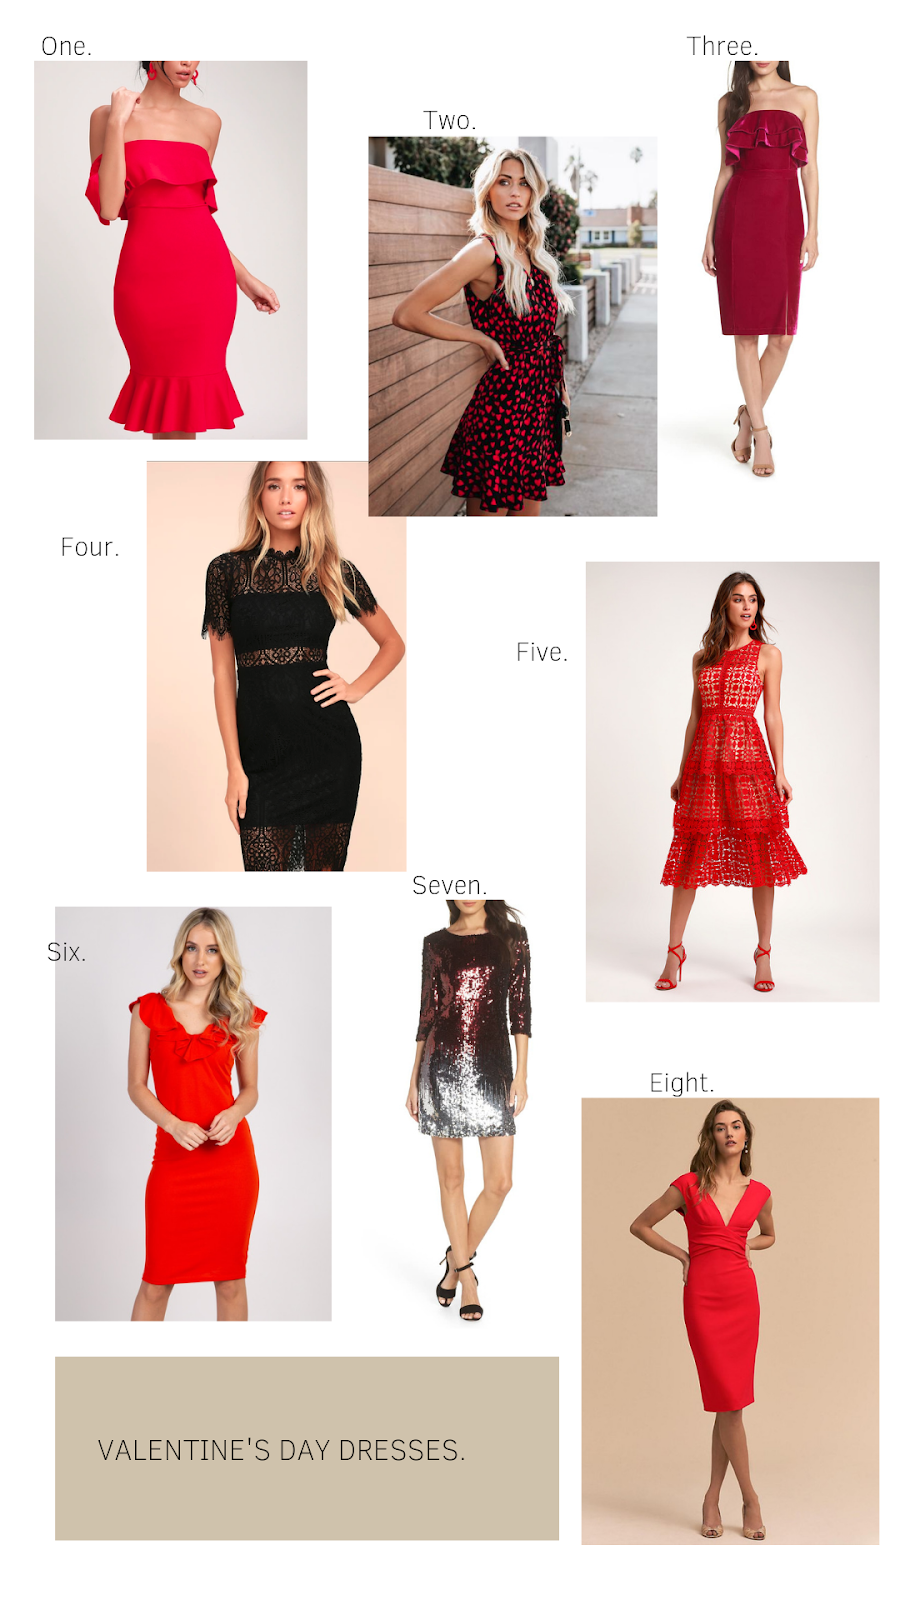 Valentine's Day Dress Guide